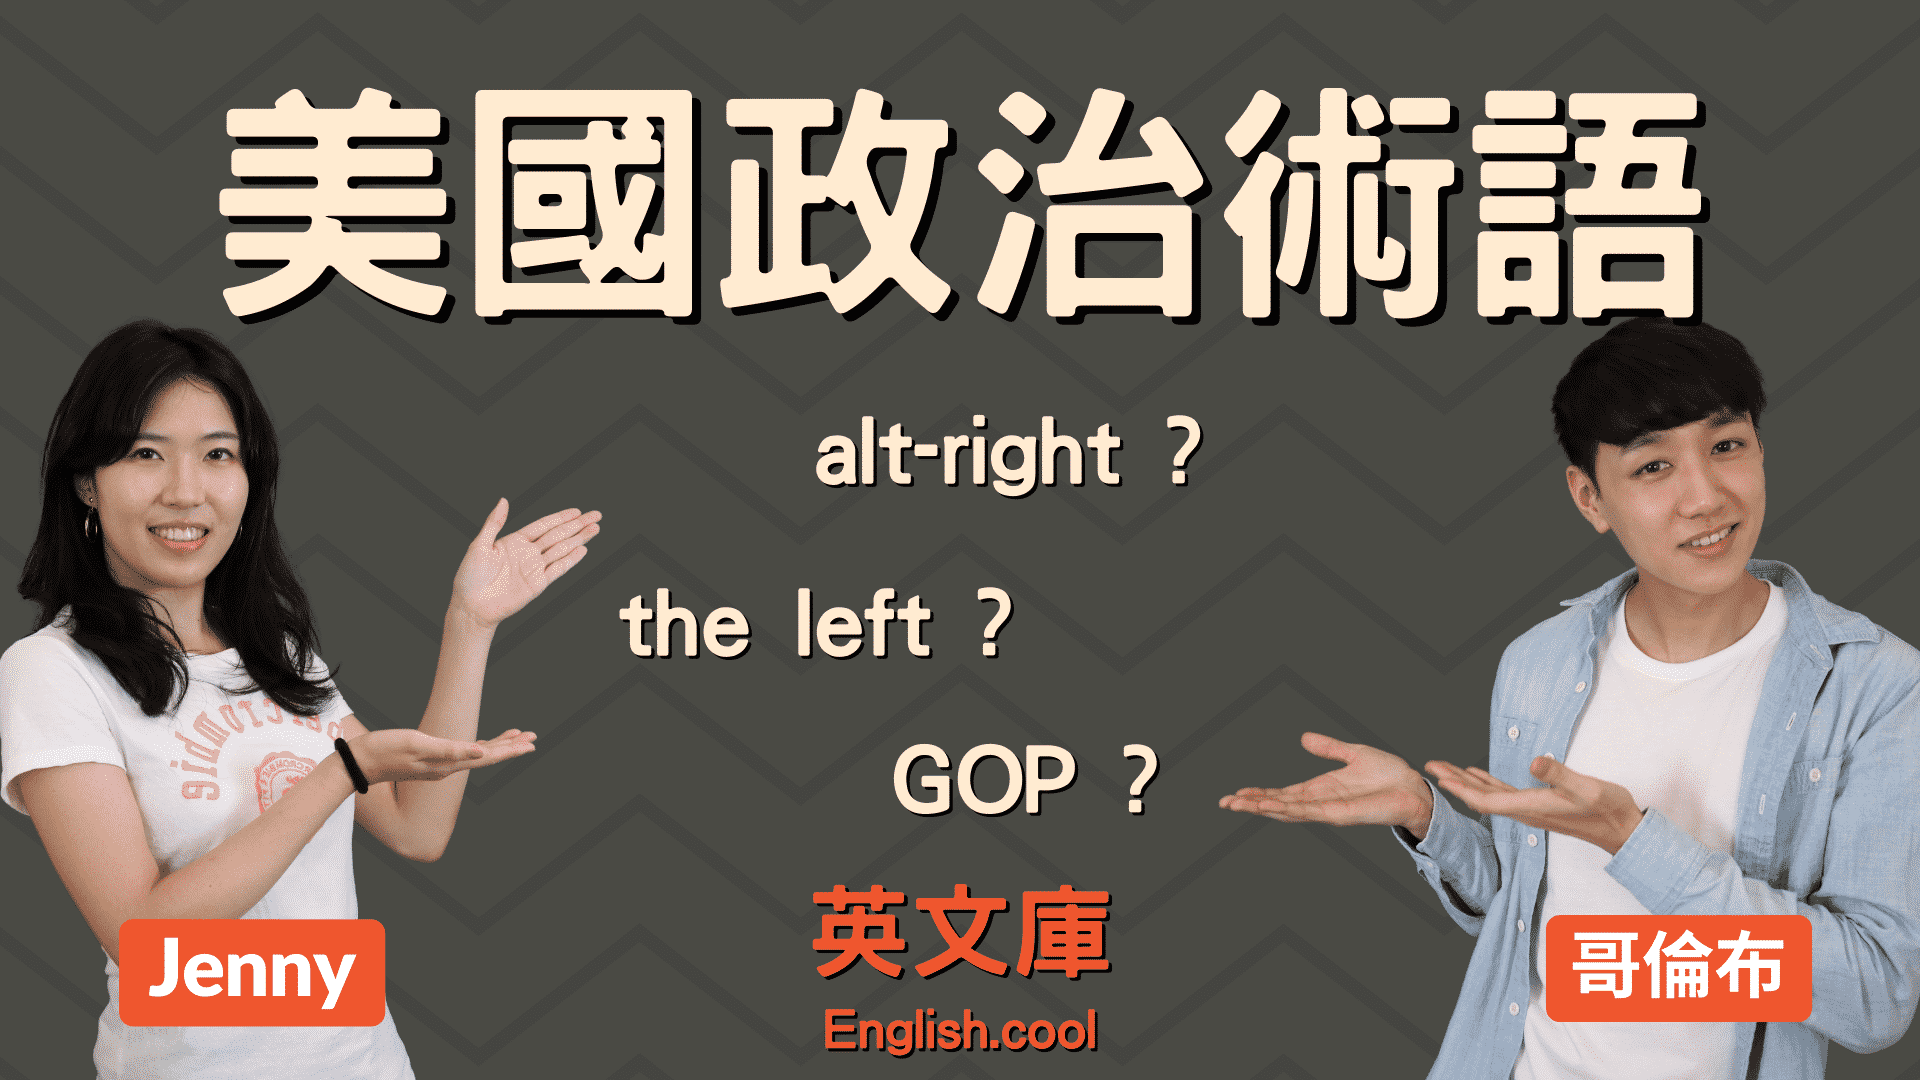 You are currently viewing 【政治術語英文】alt-right, GOP, bipartisan 等是什麼意思?